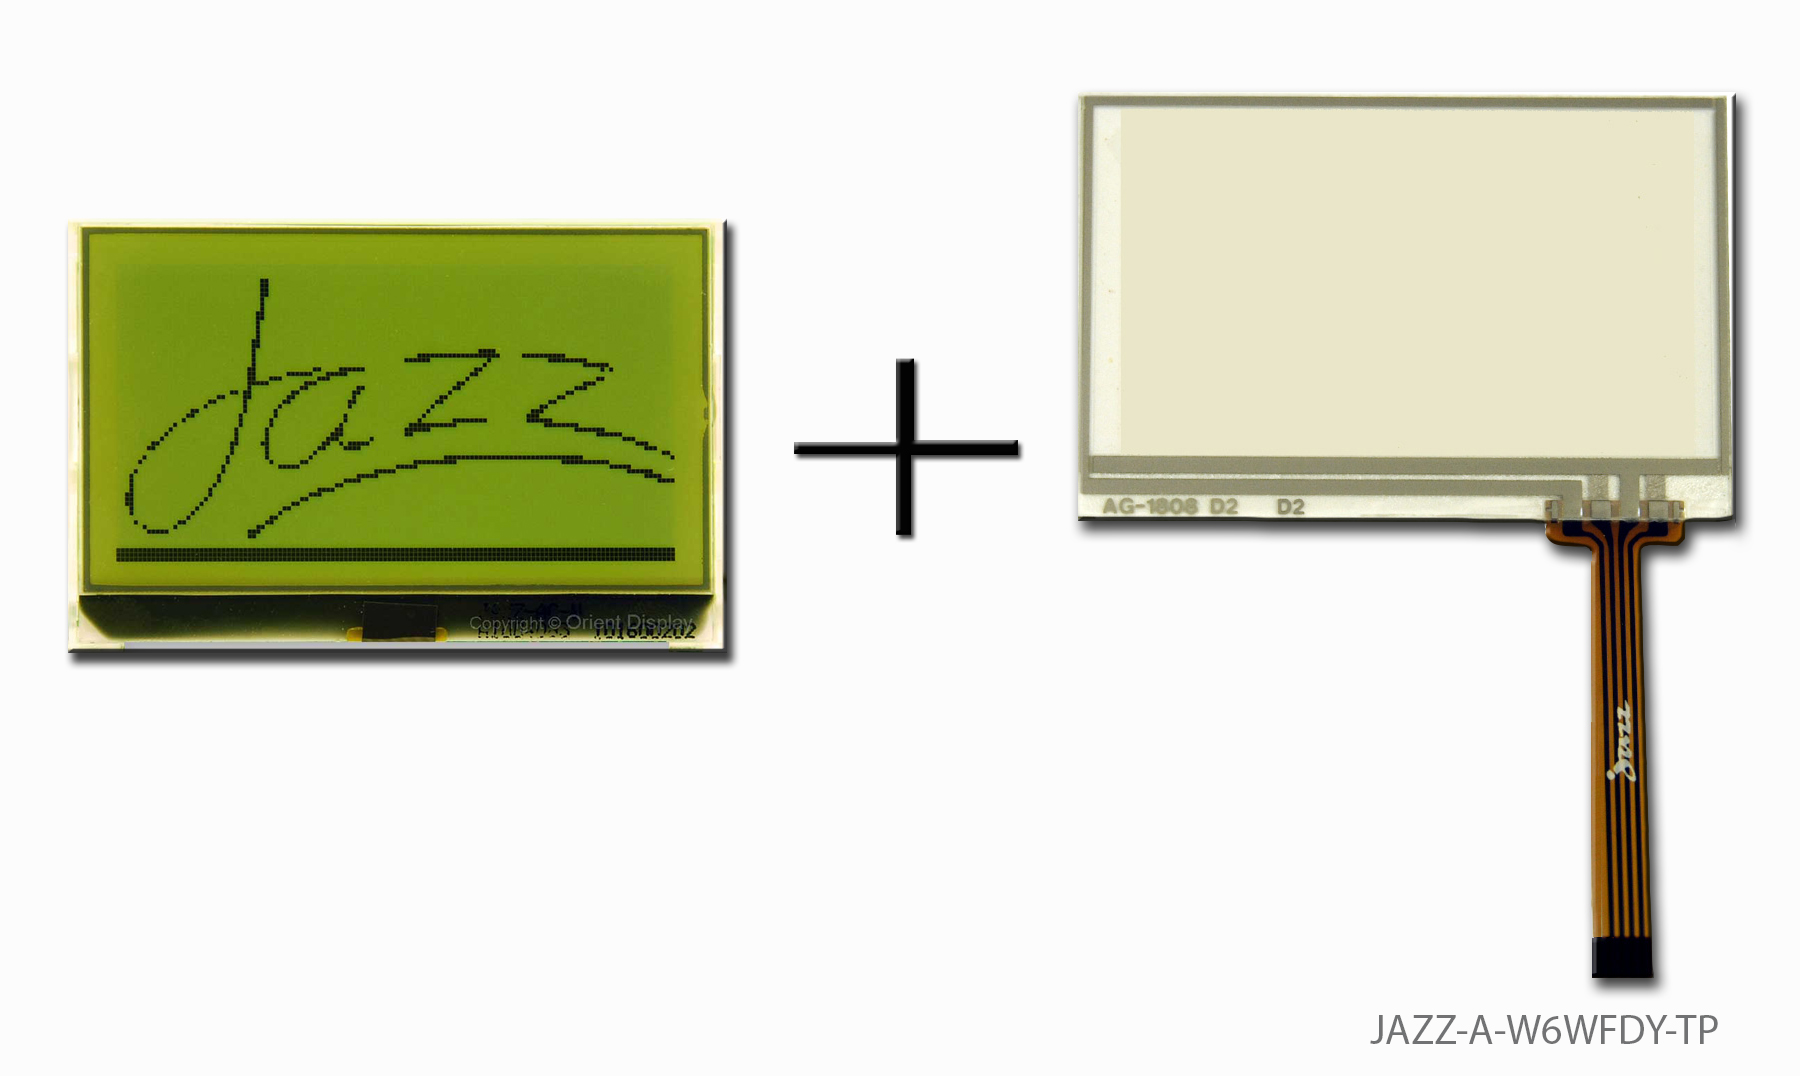 JAZZ-A-W6WFDY-TP (LCD+BL+RTP Graphic COG 128x64)